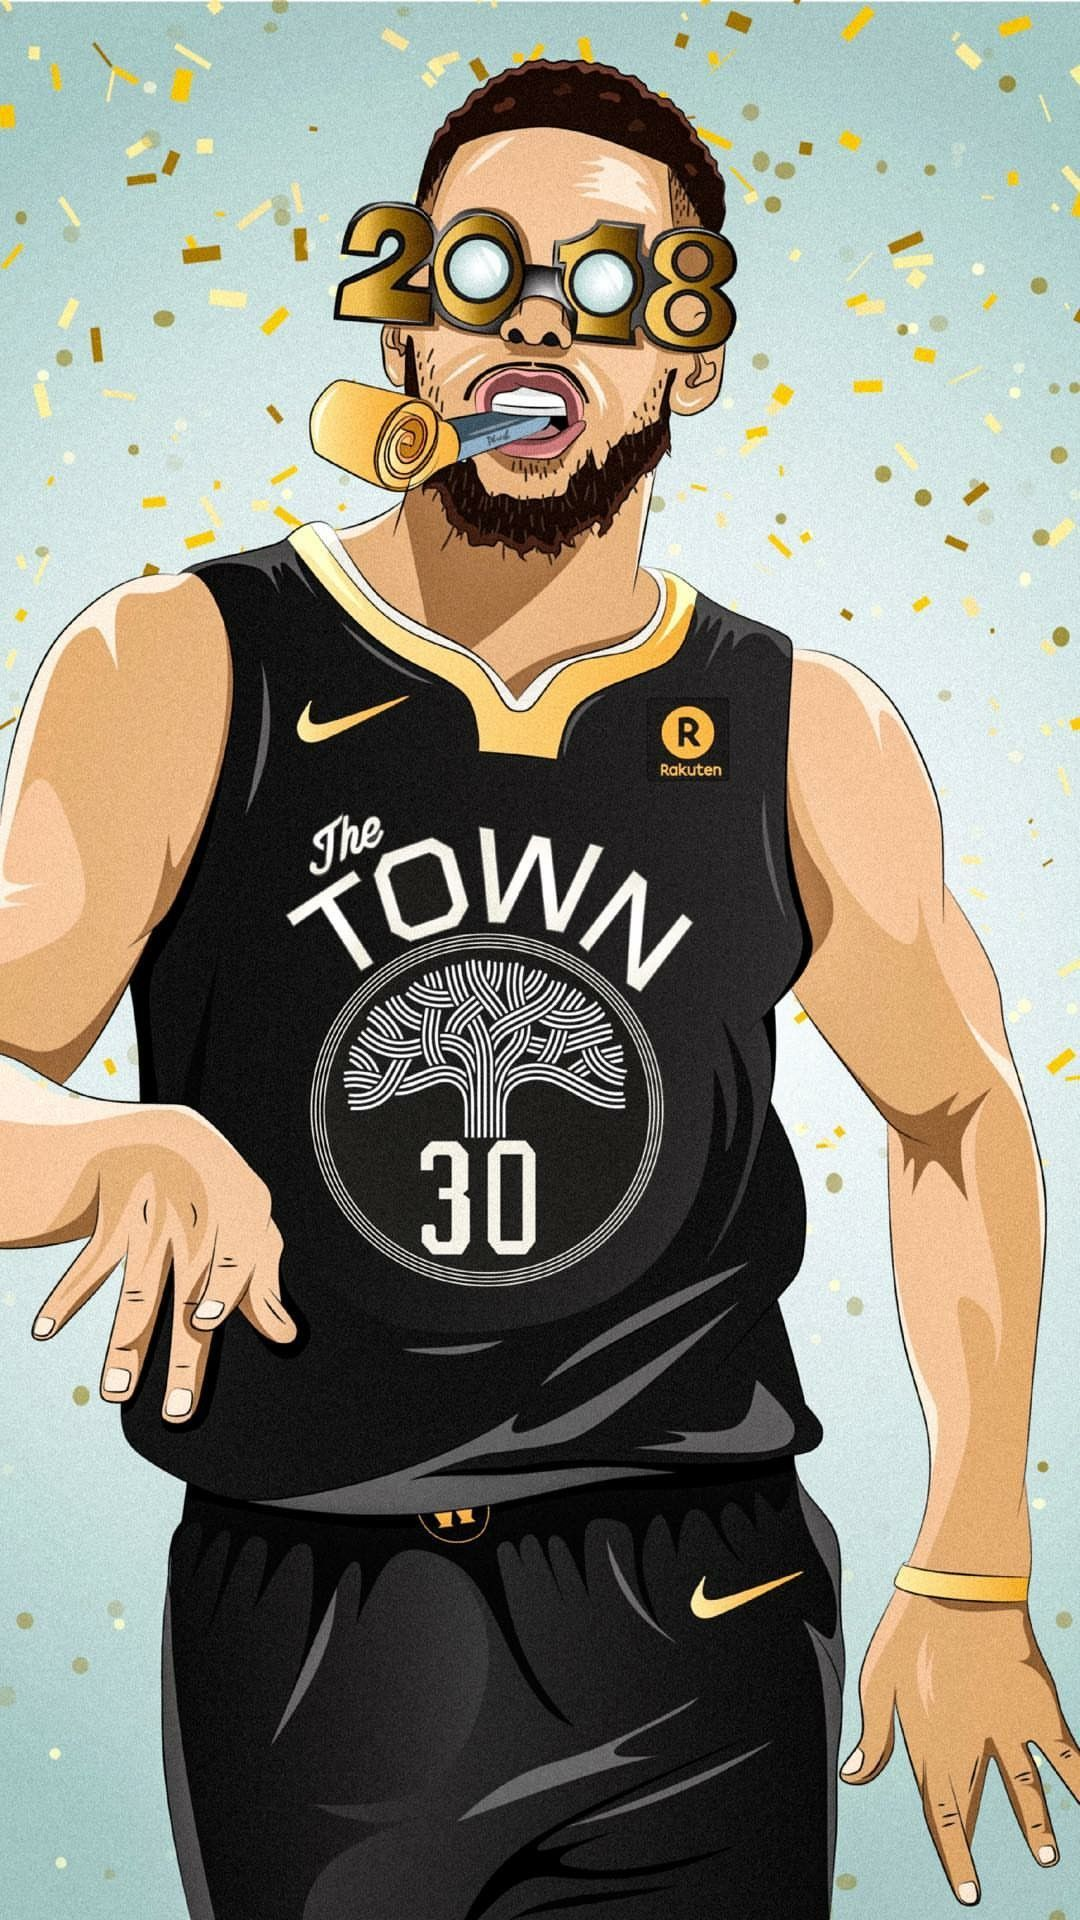 Stephen Curry 2018 New Year Wallpaper BASKETBALL Stephen curry 1080x1920